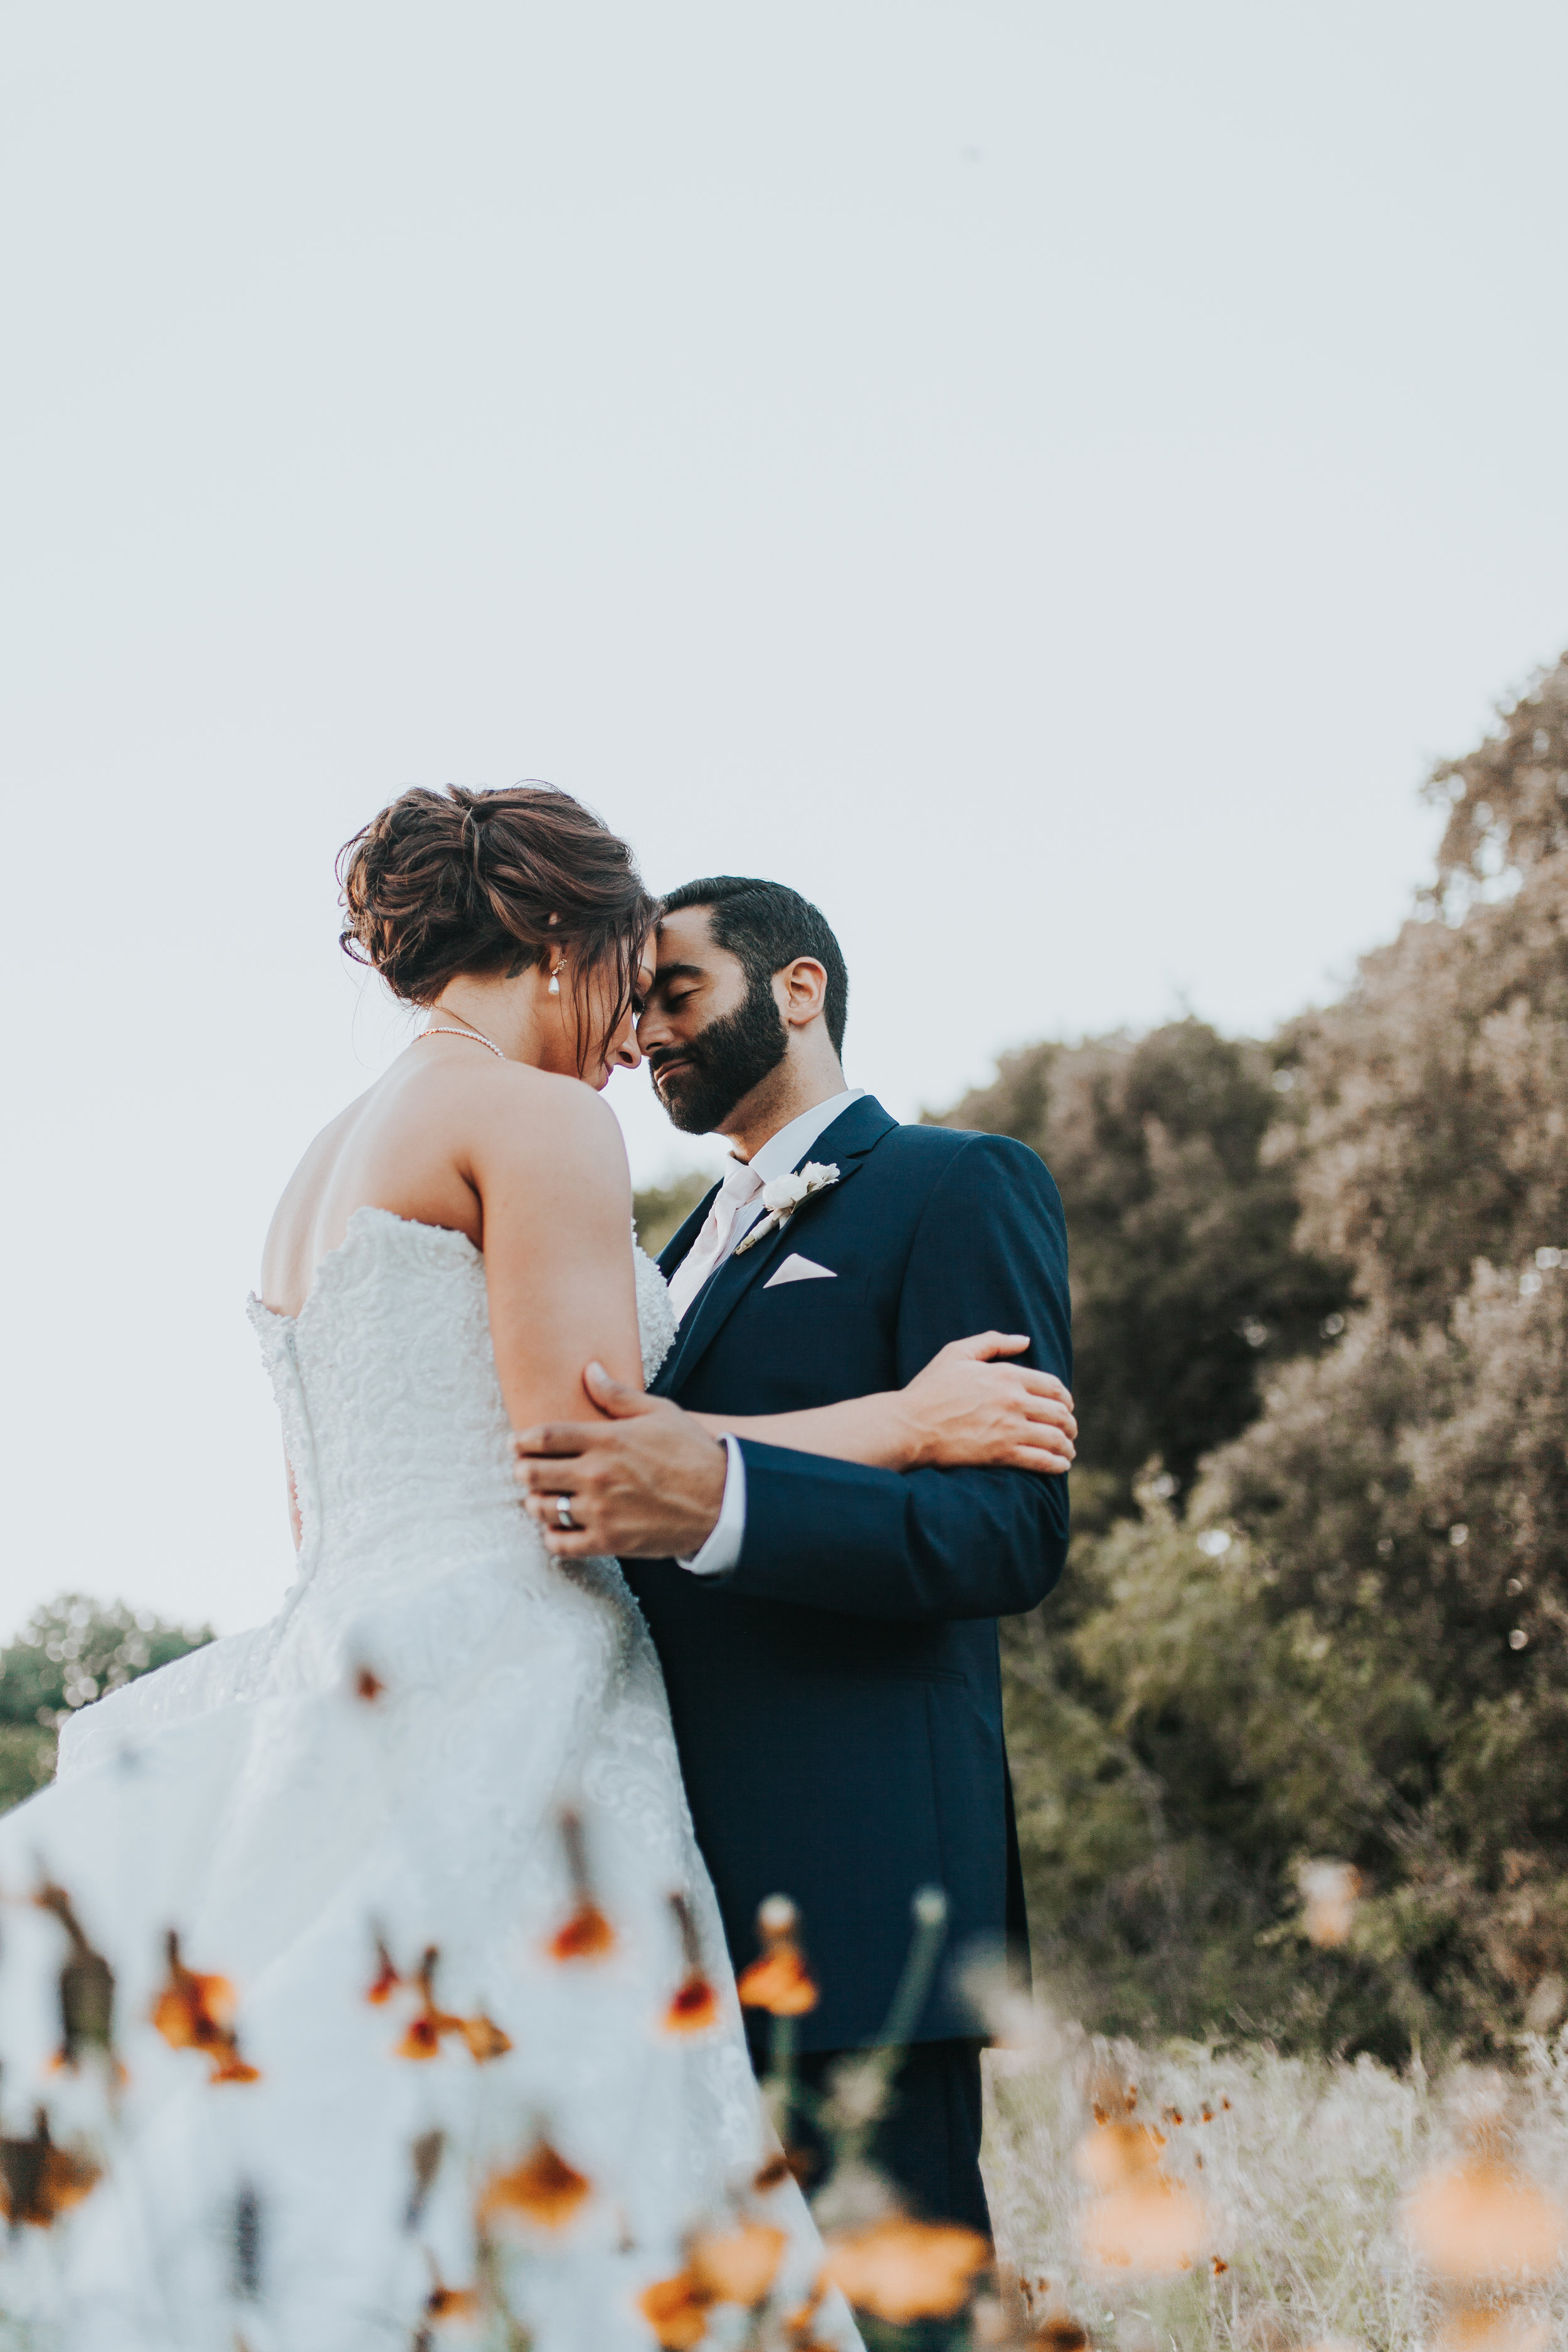 Anna & Michael  Egyptian coptic wedding // Brodie Homestead ↠